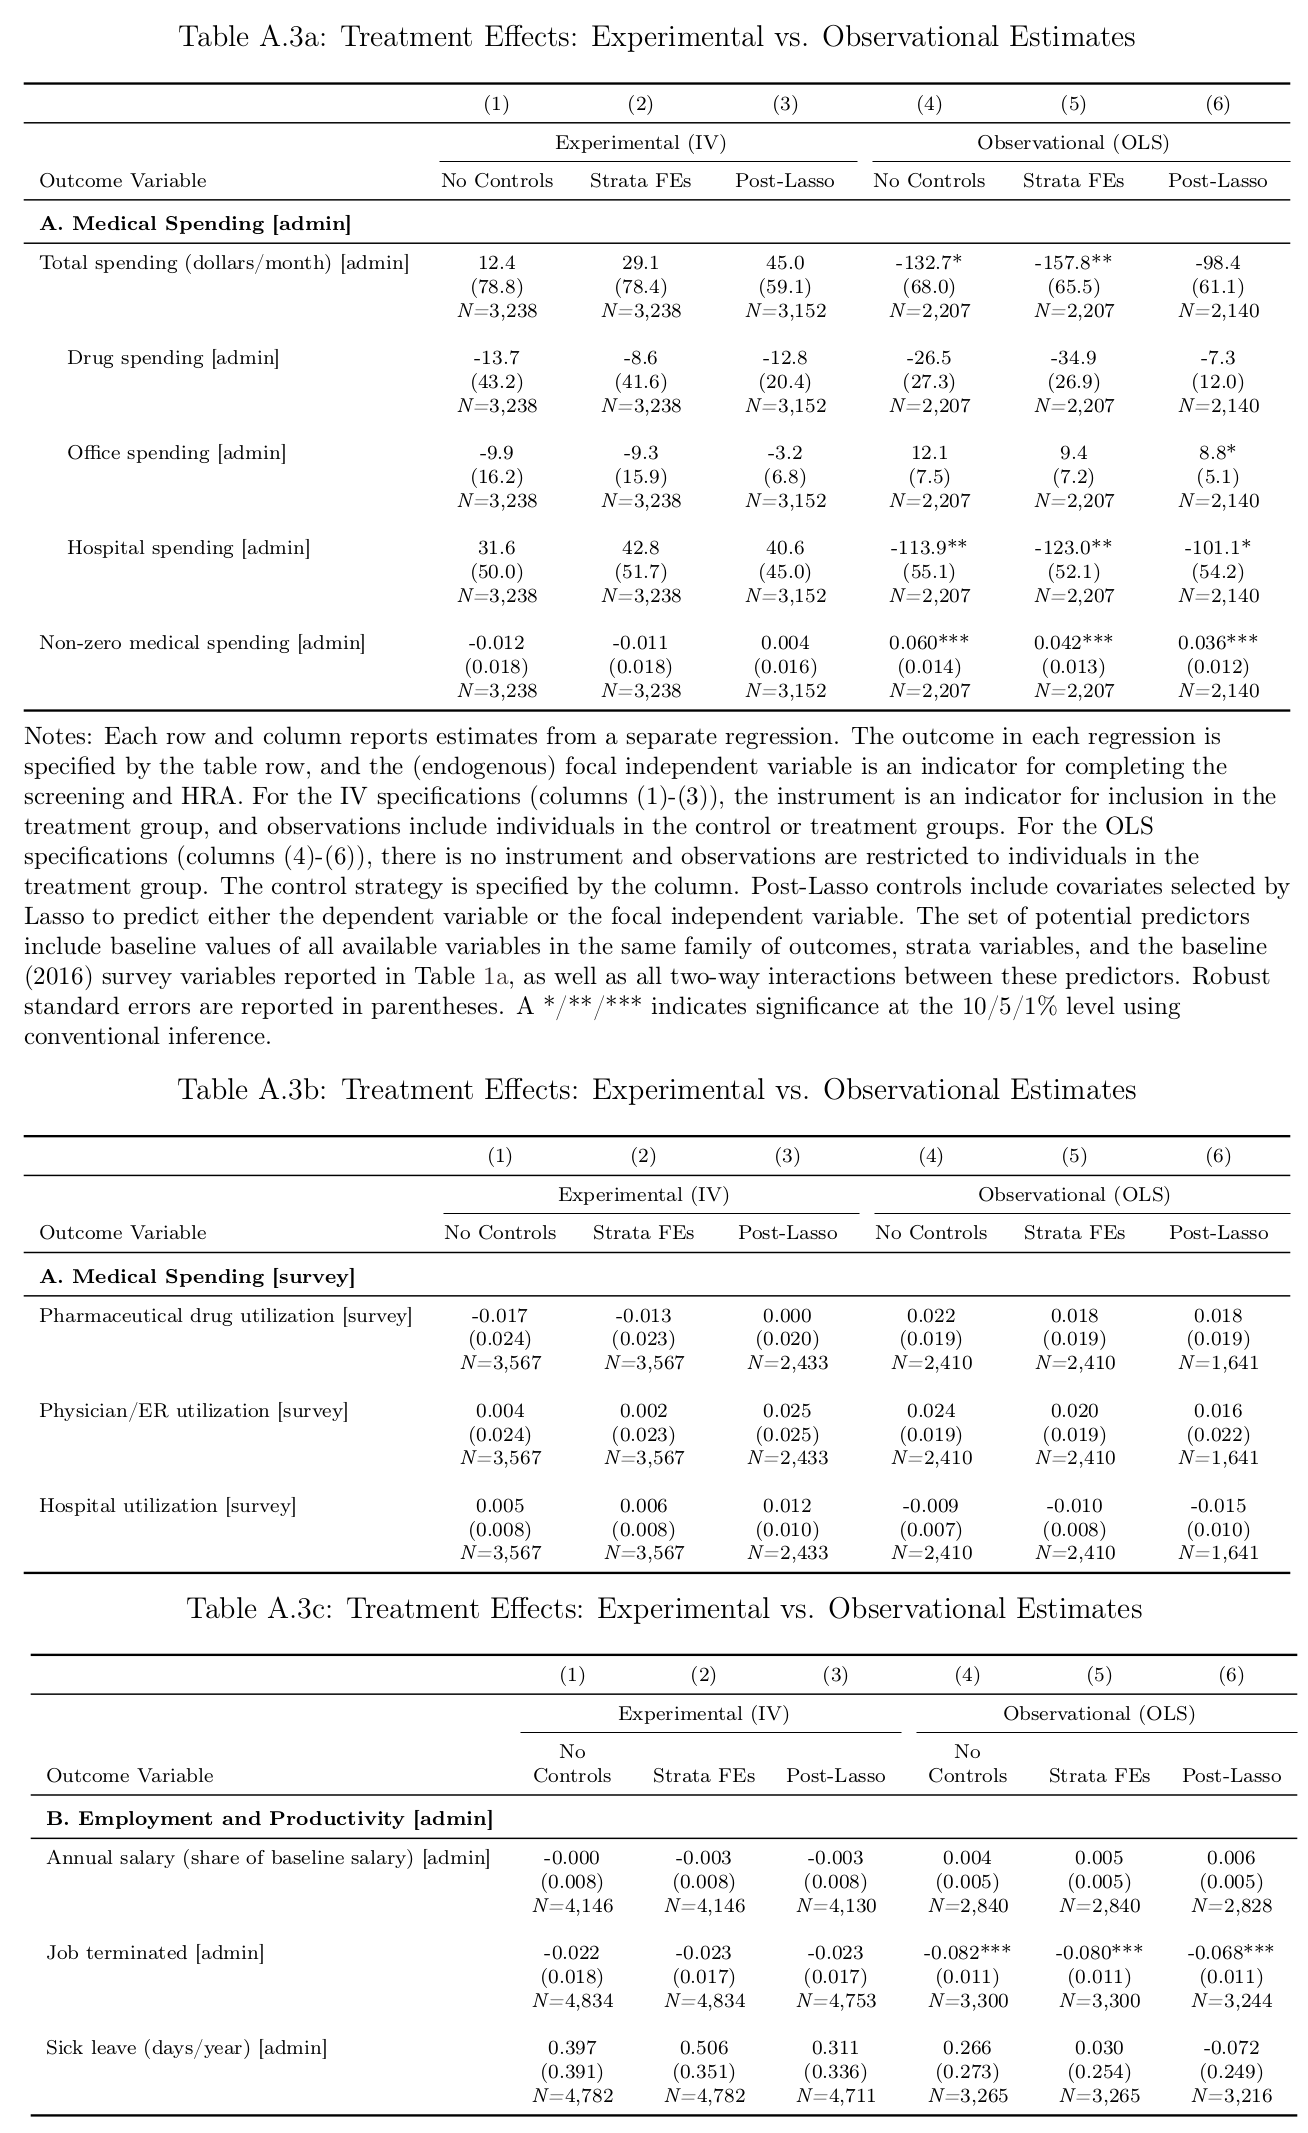 Jones et al 2018 appendix: Table A3, a-c, all randomized vs correlational estimates